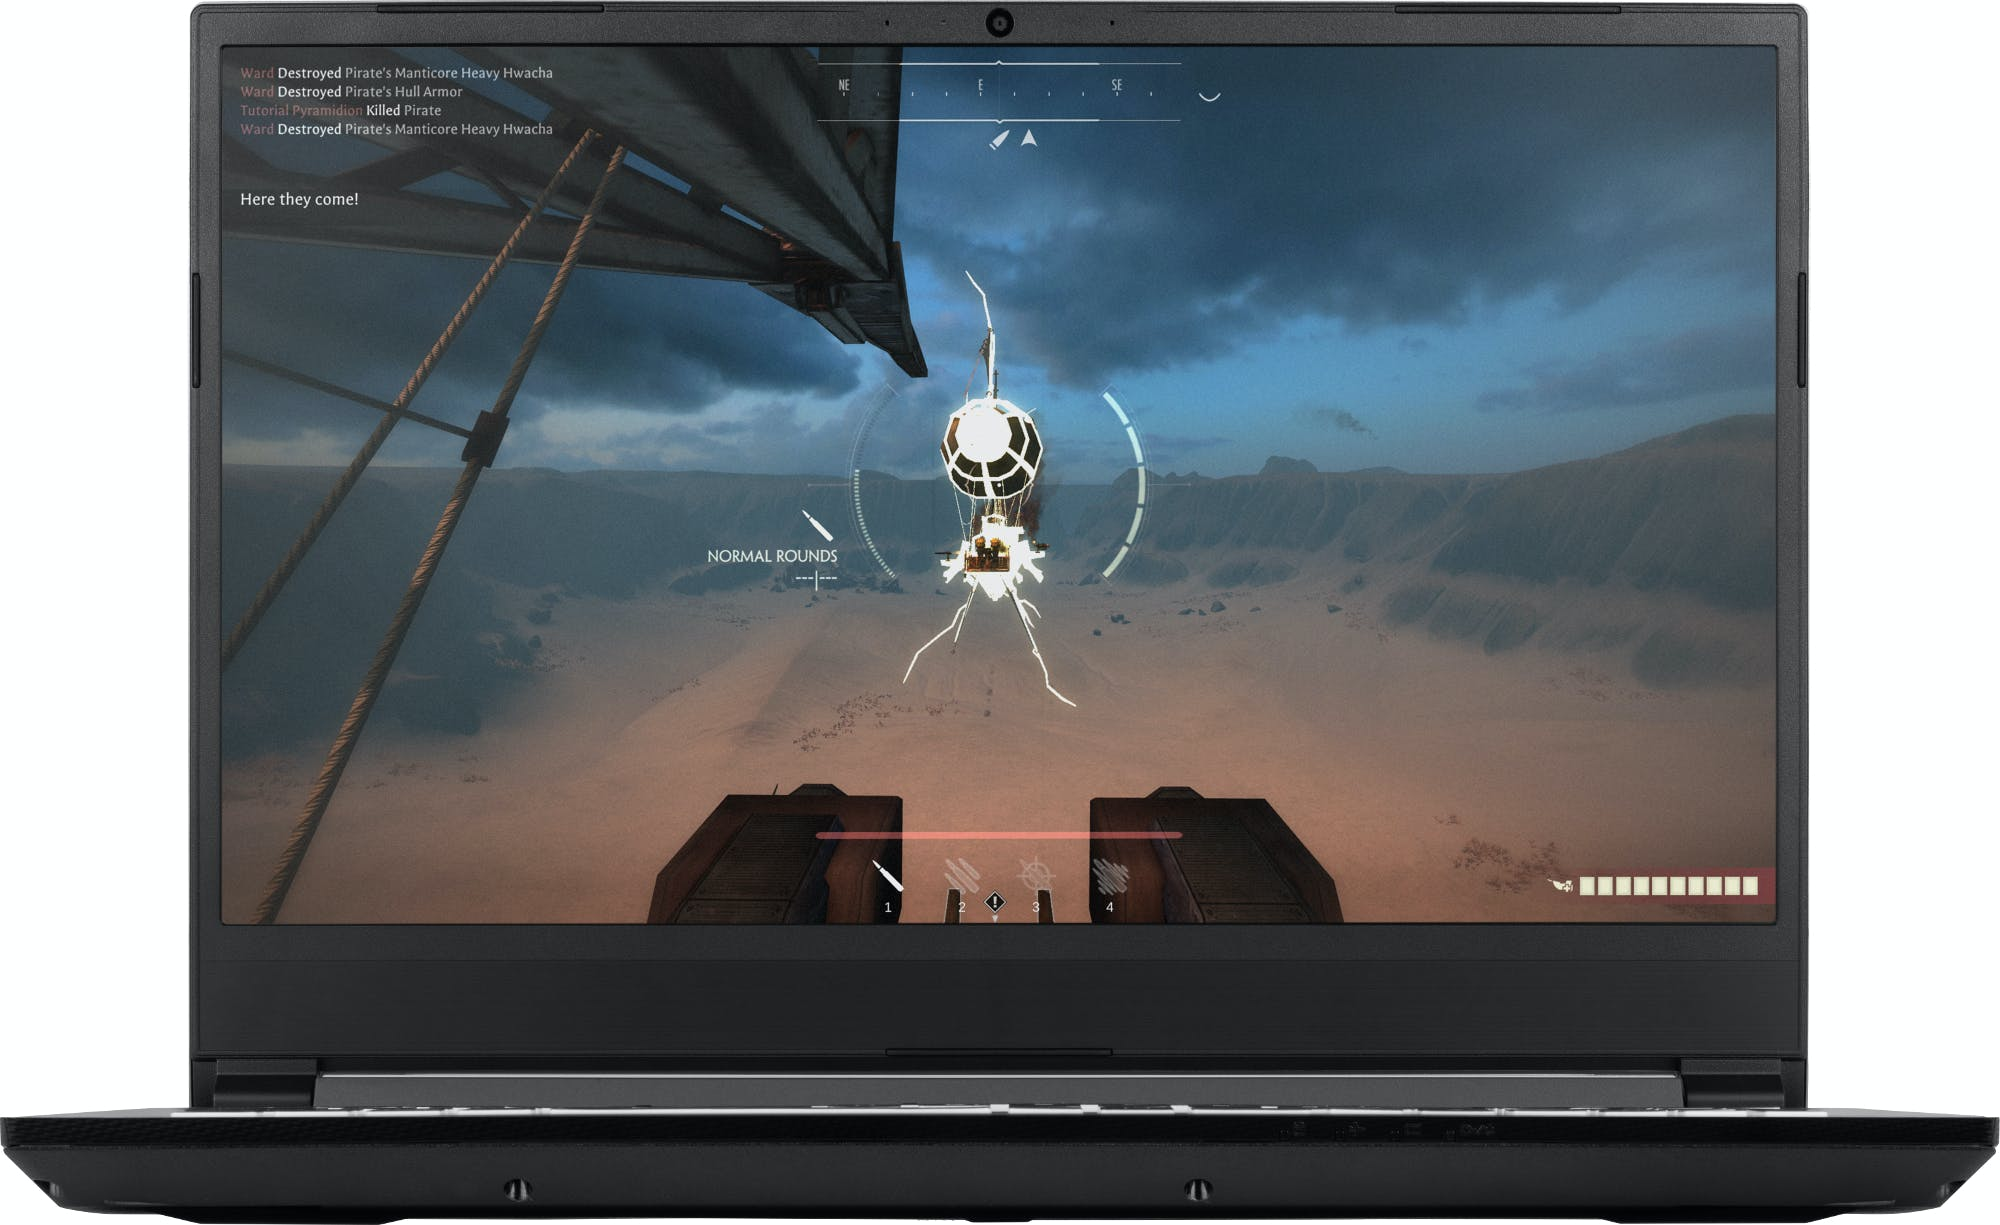 The Gazelle laptop running the Airship video game.